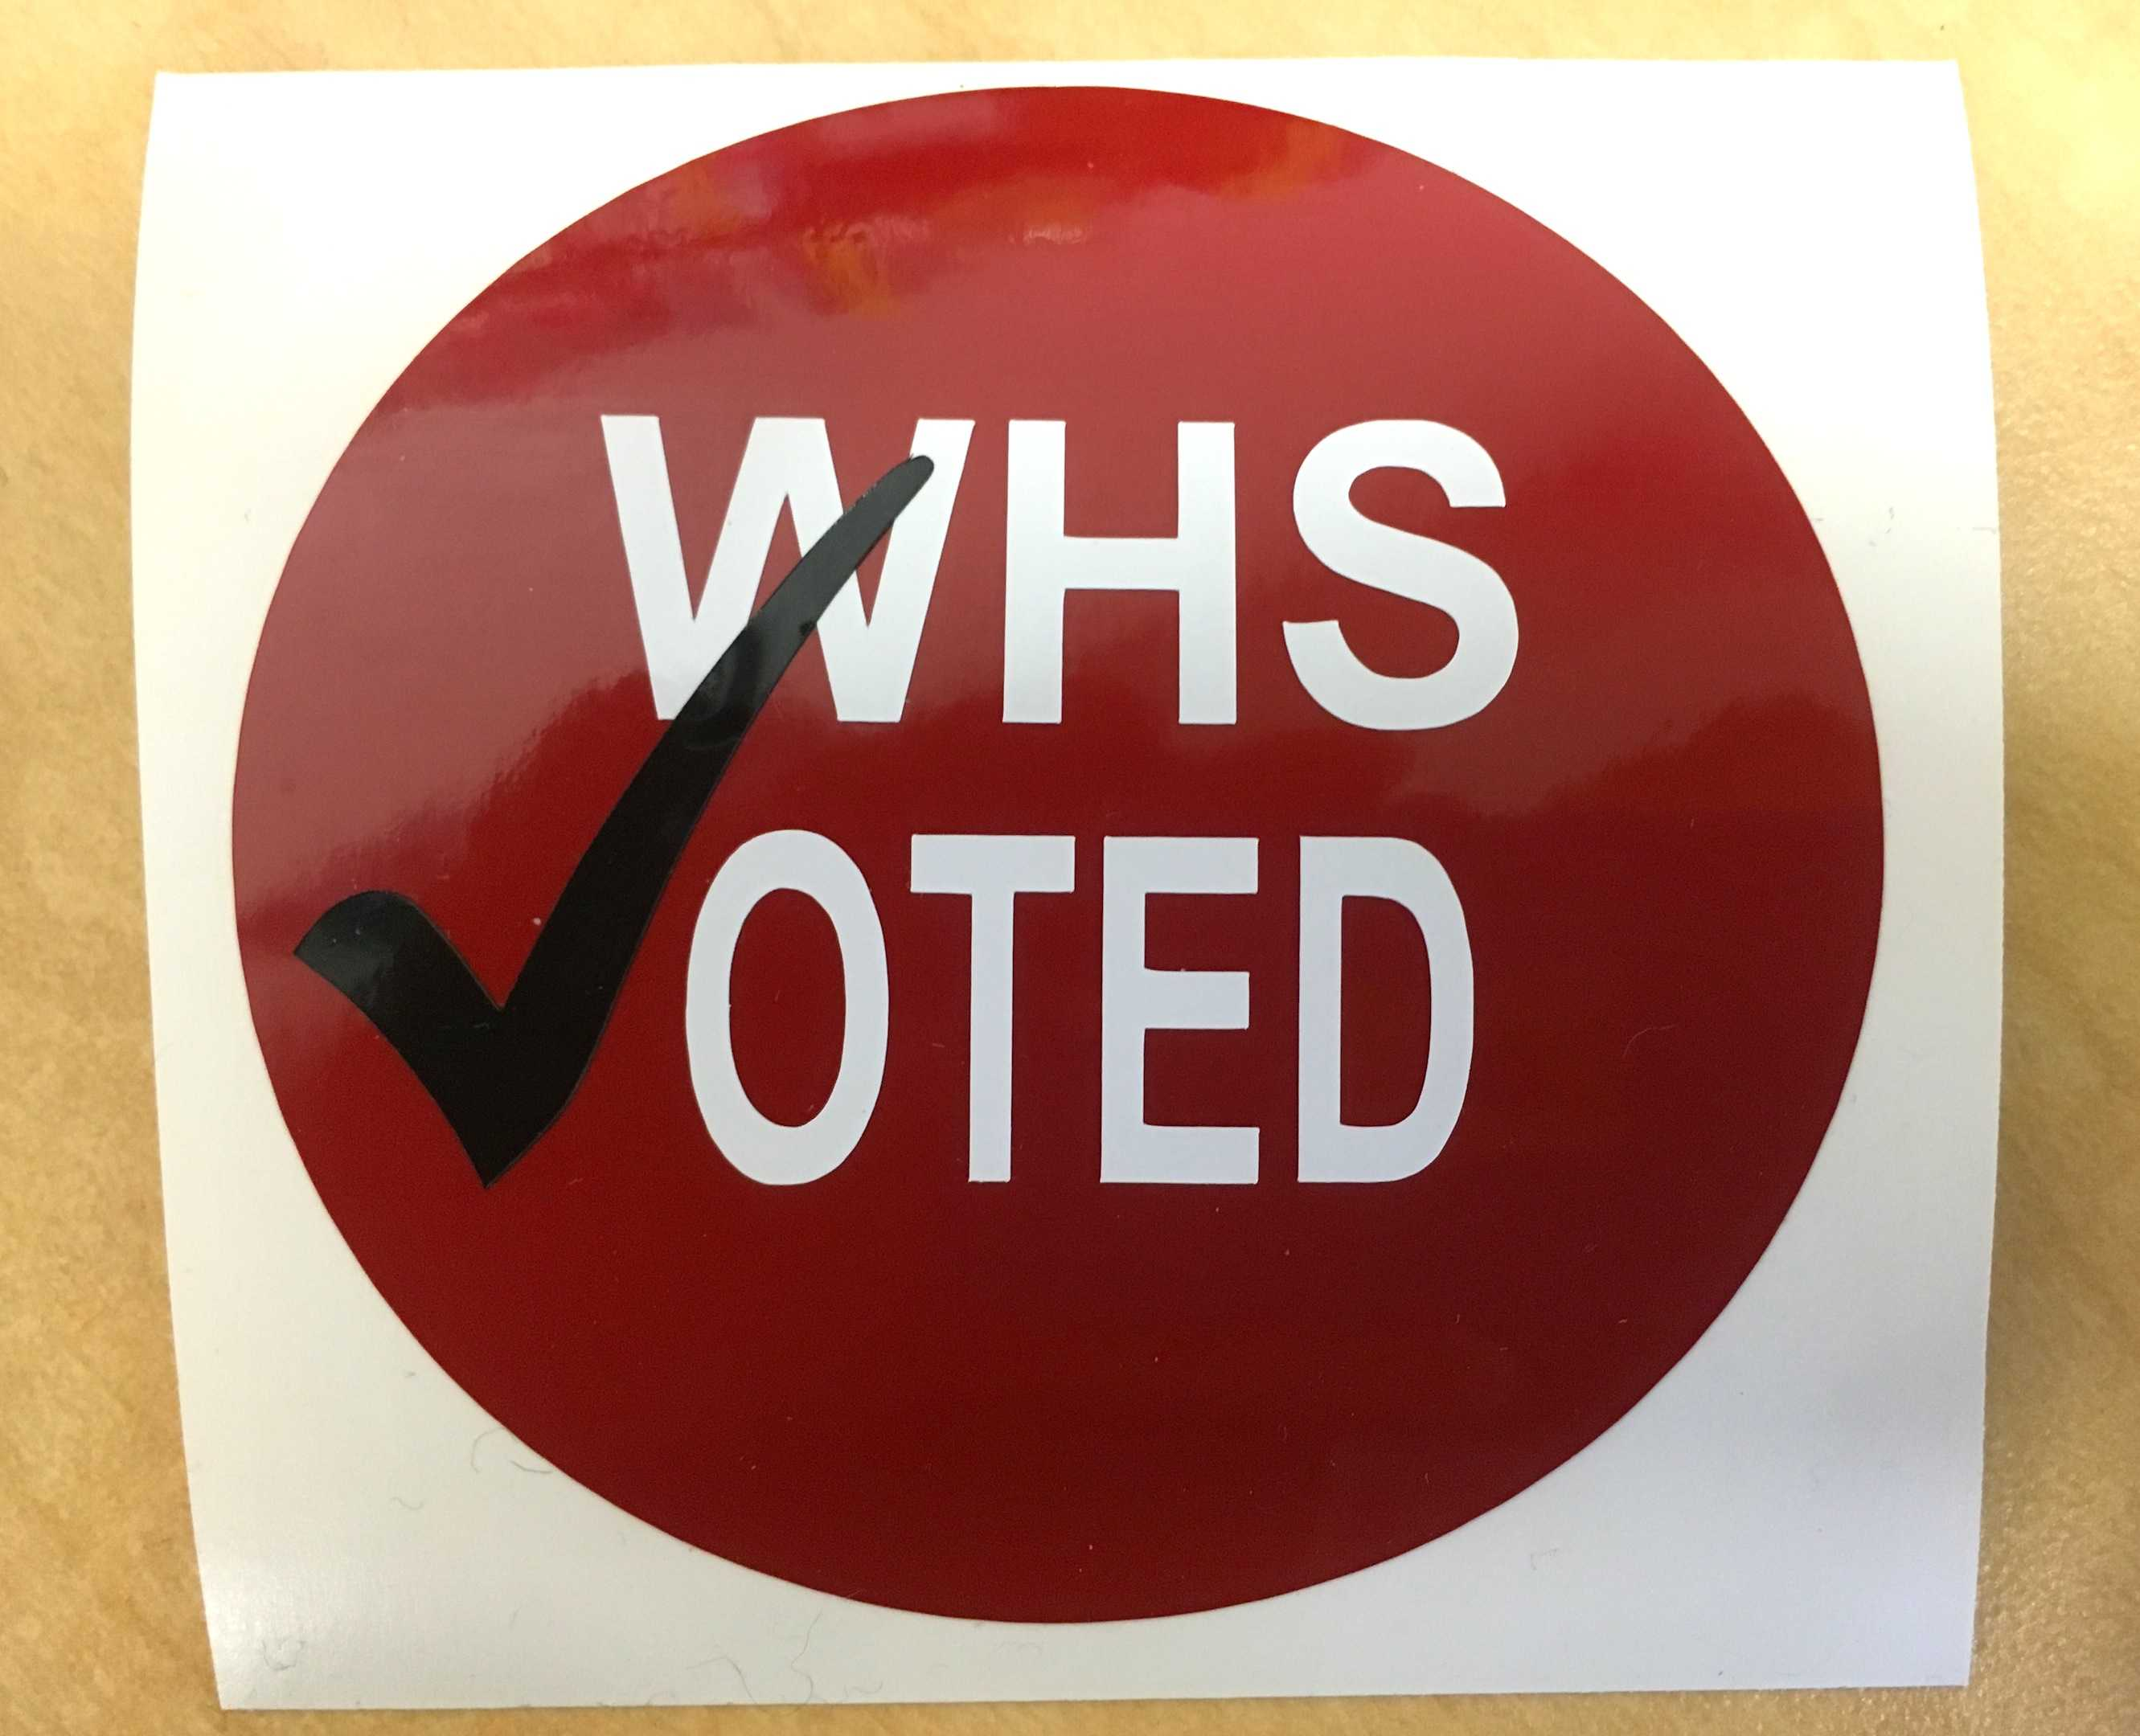 More than 270 students, faculty, and staff at Watertown High School voted in the Super Monday presidential election event on Feb. 29, 2016 -- with the Fab Lab creating special stickers to mark the occasion.